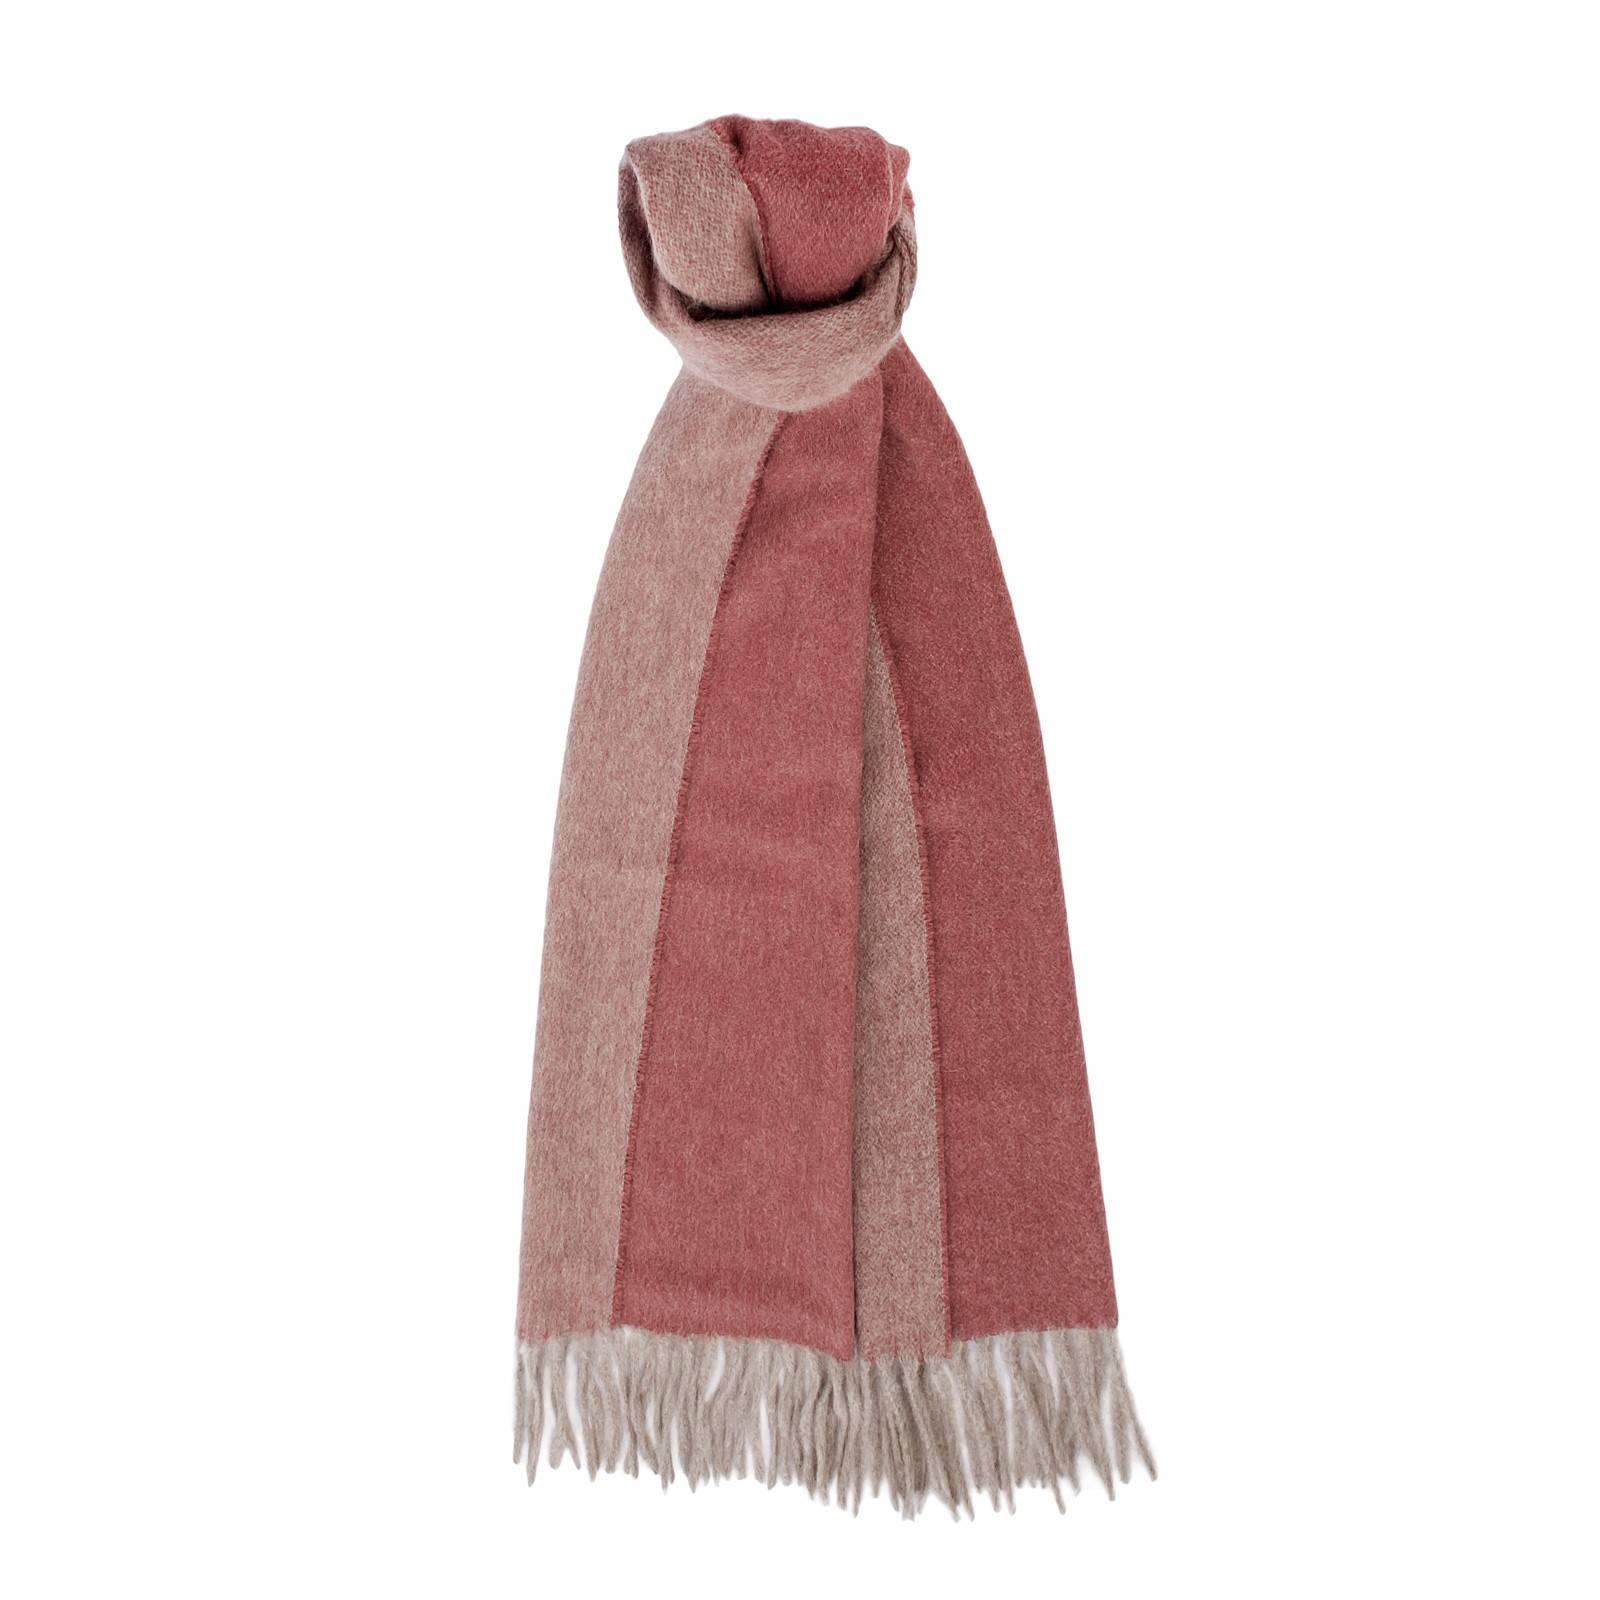 Pure cashmere scarves: Chandigarh scarf color Crème/Crème & Chandigarh scarf color Bleu/Gris.